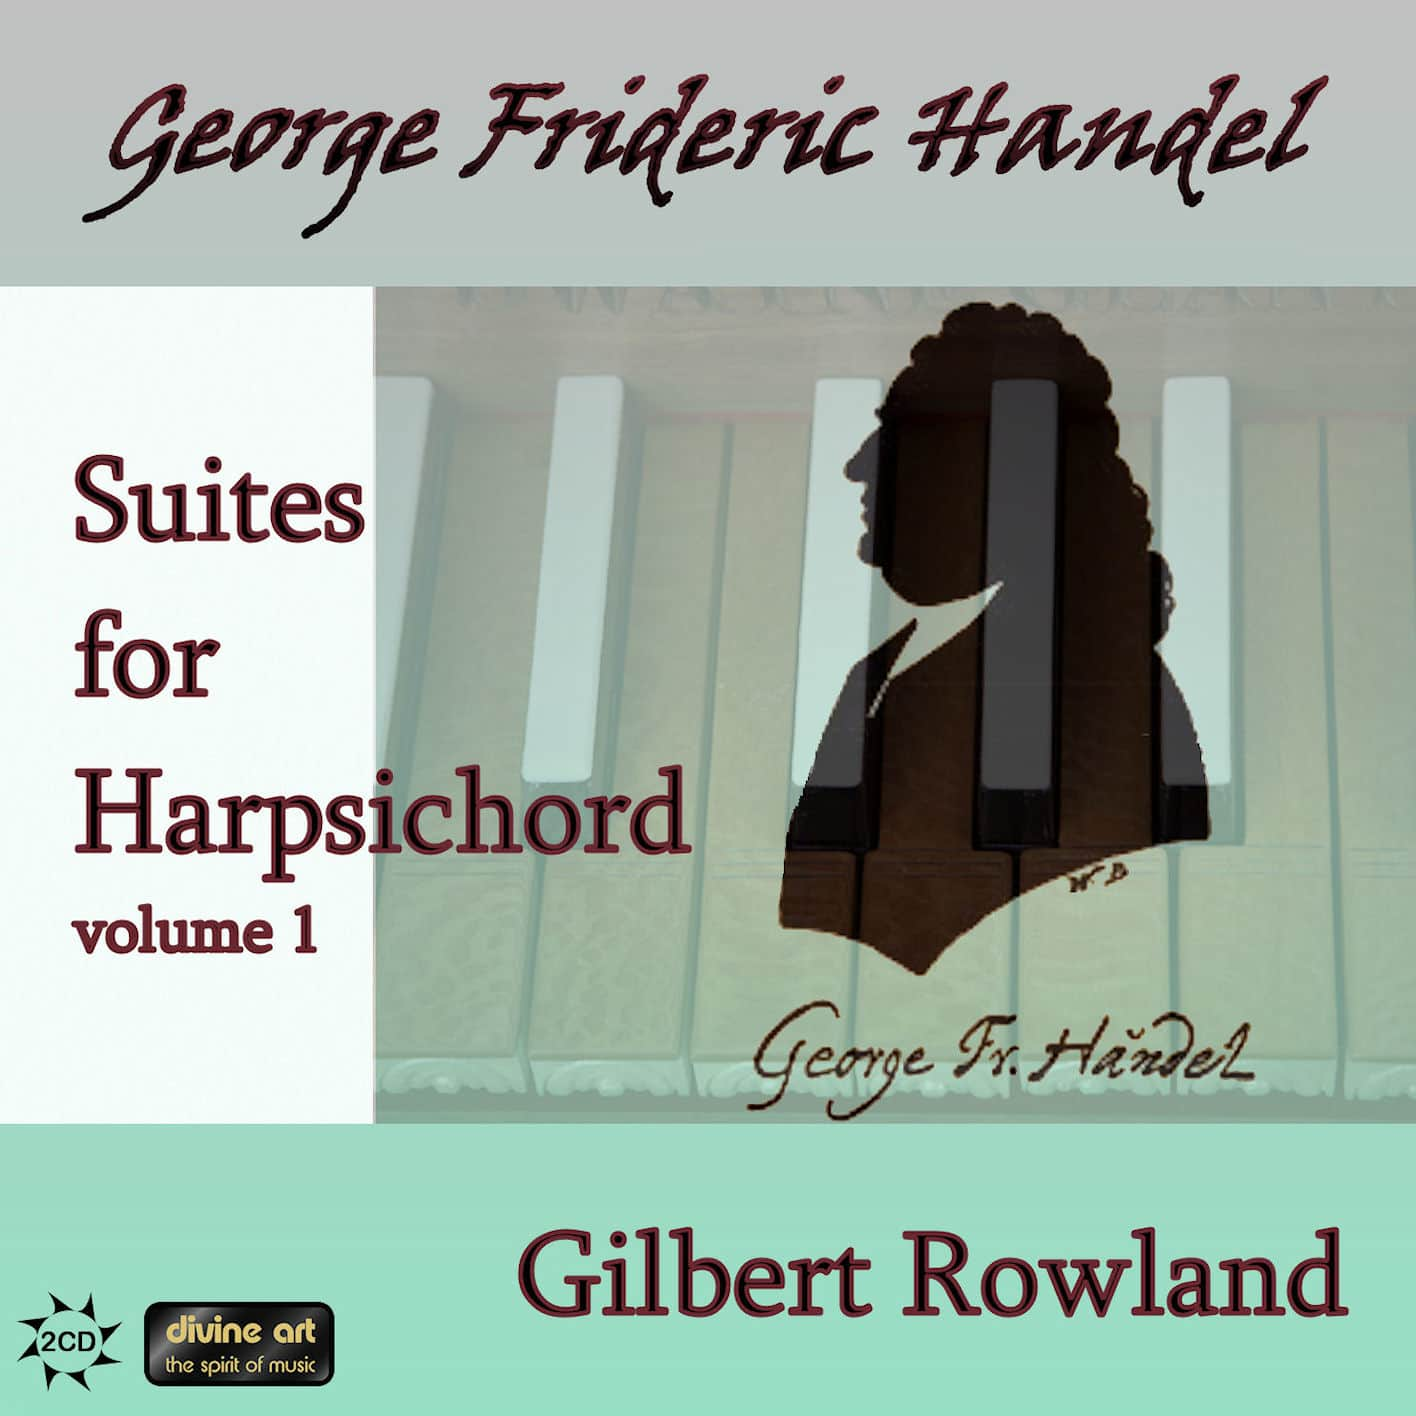 Handel: Suites for Harpsichord, vol. 1 (2CD)